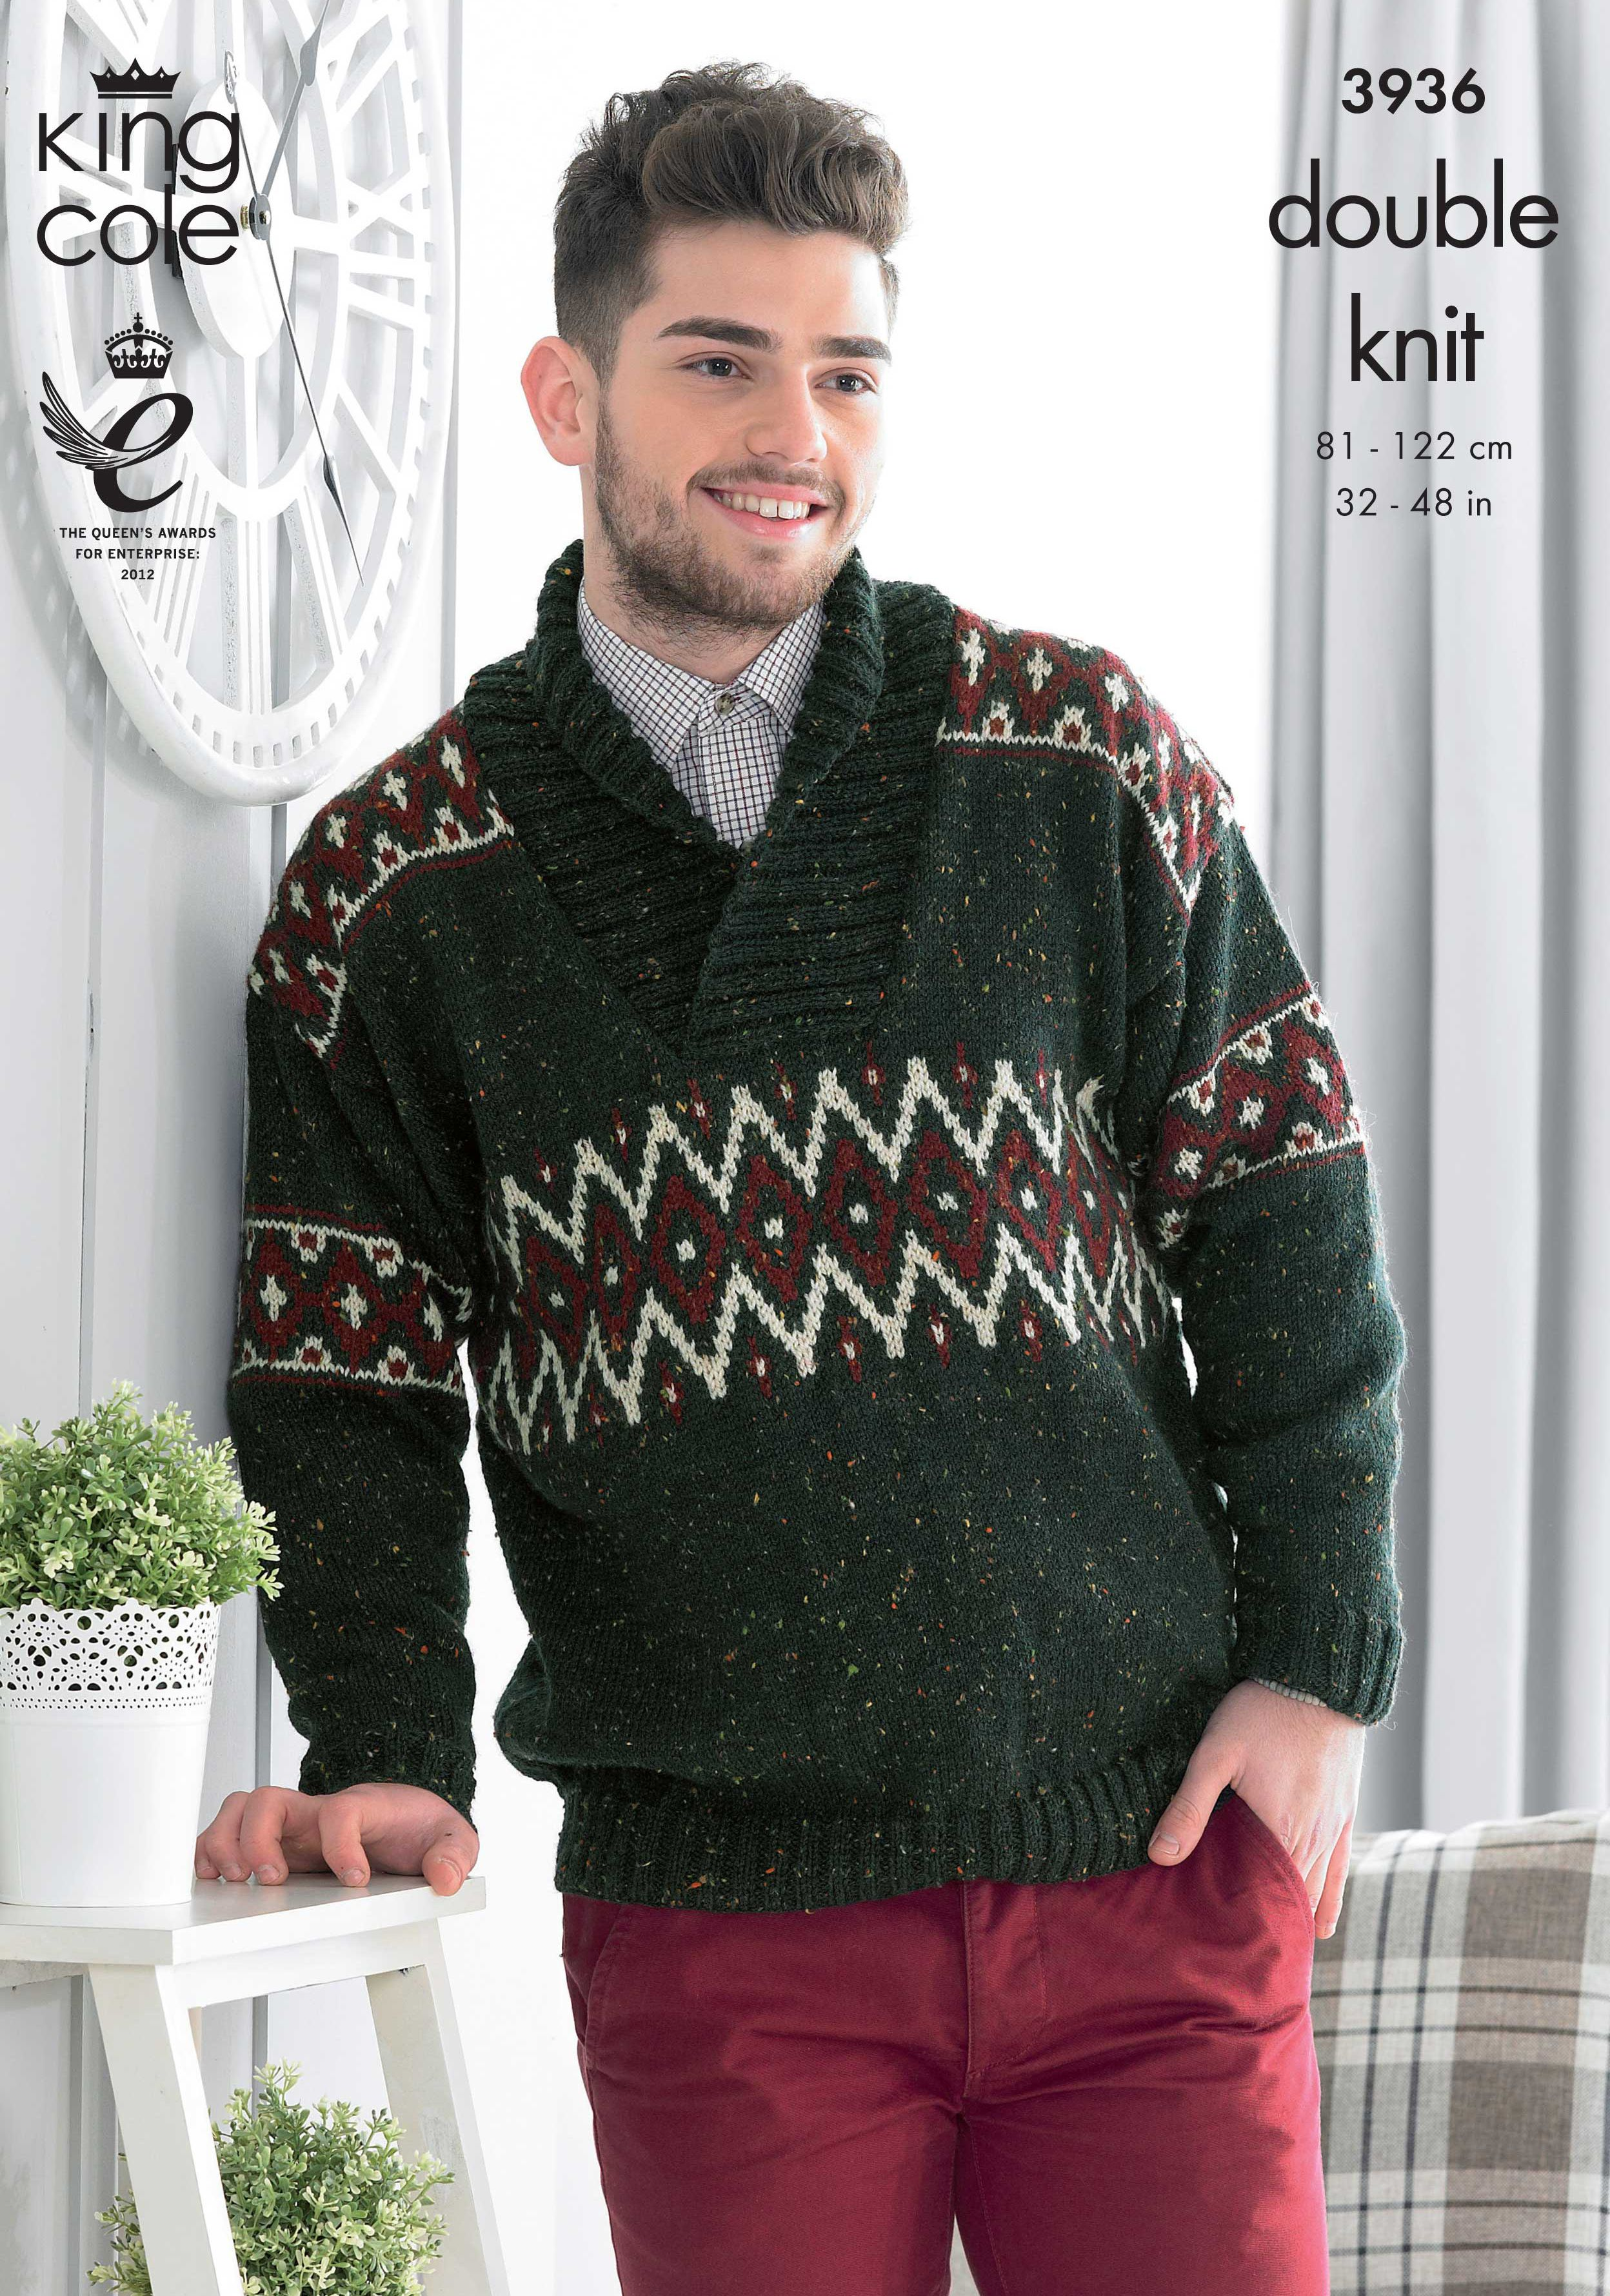 Mens graphic knitted jumper king cole fathers day patterns explore christmas jumpers knitting patterns and more bankloansurffo Image collections